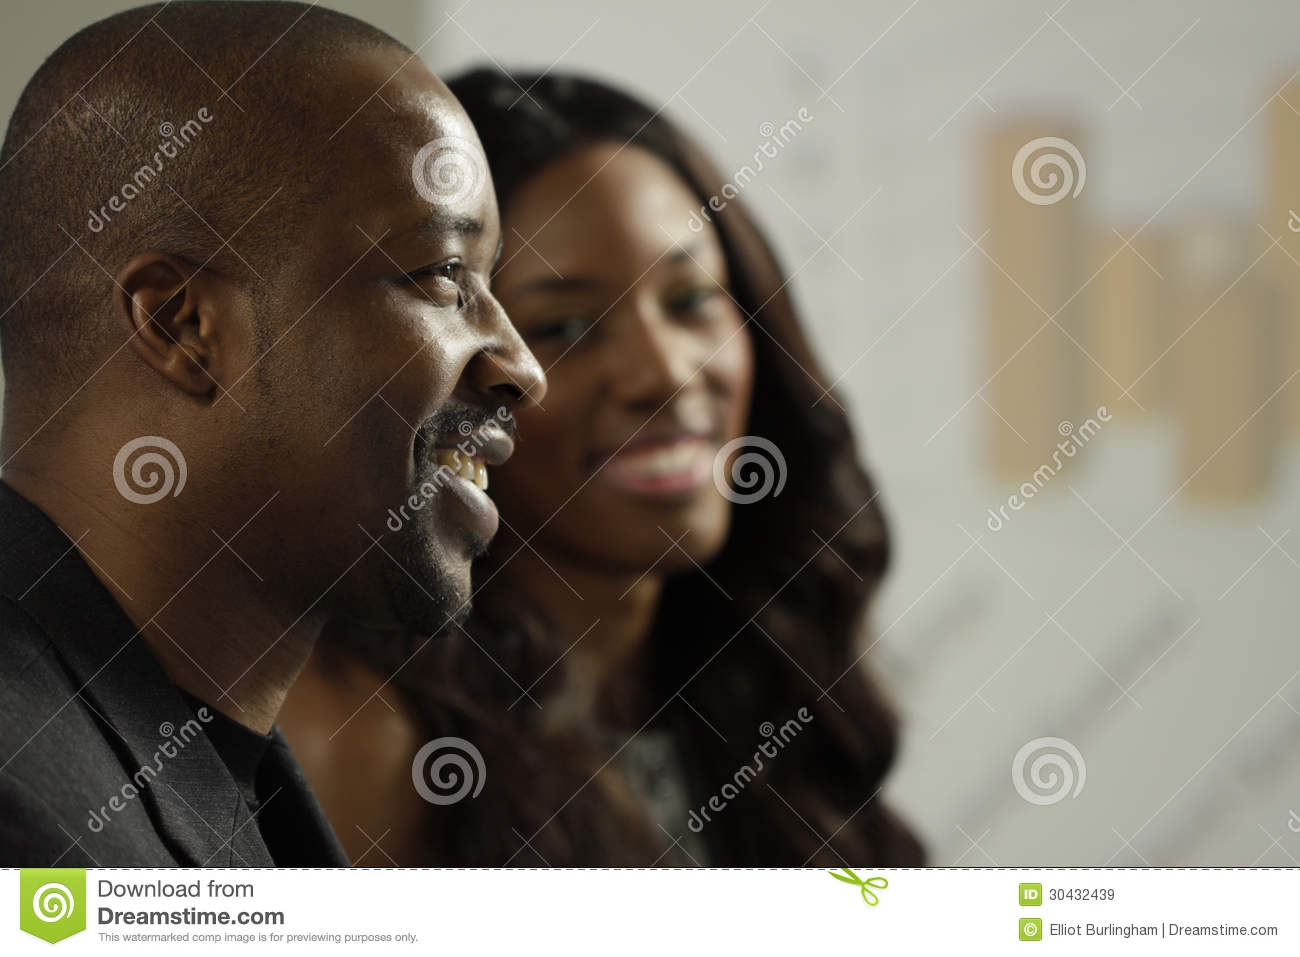 Nigerian men seeking american women